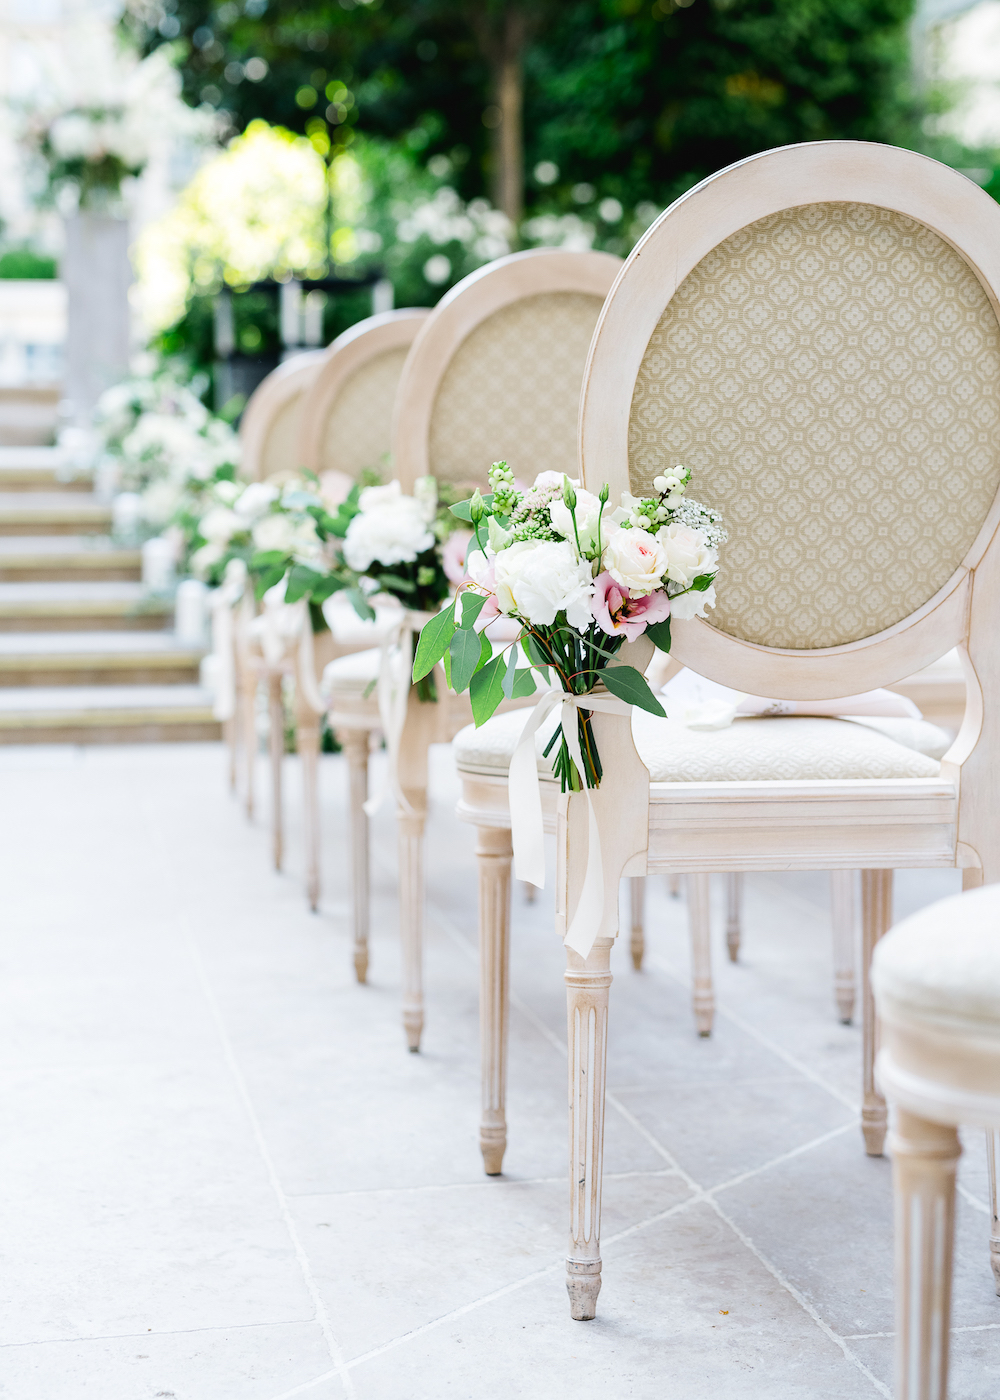 Wedding ceremony aisle decoration at the Ritz Paris